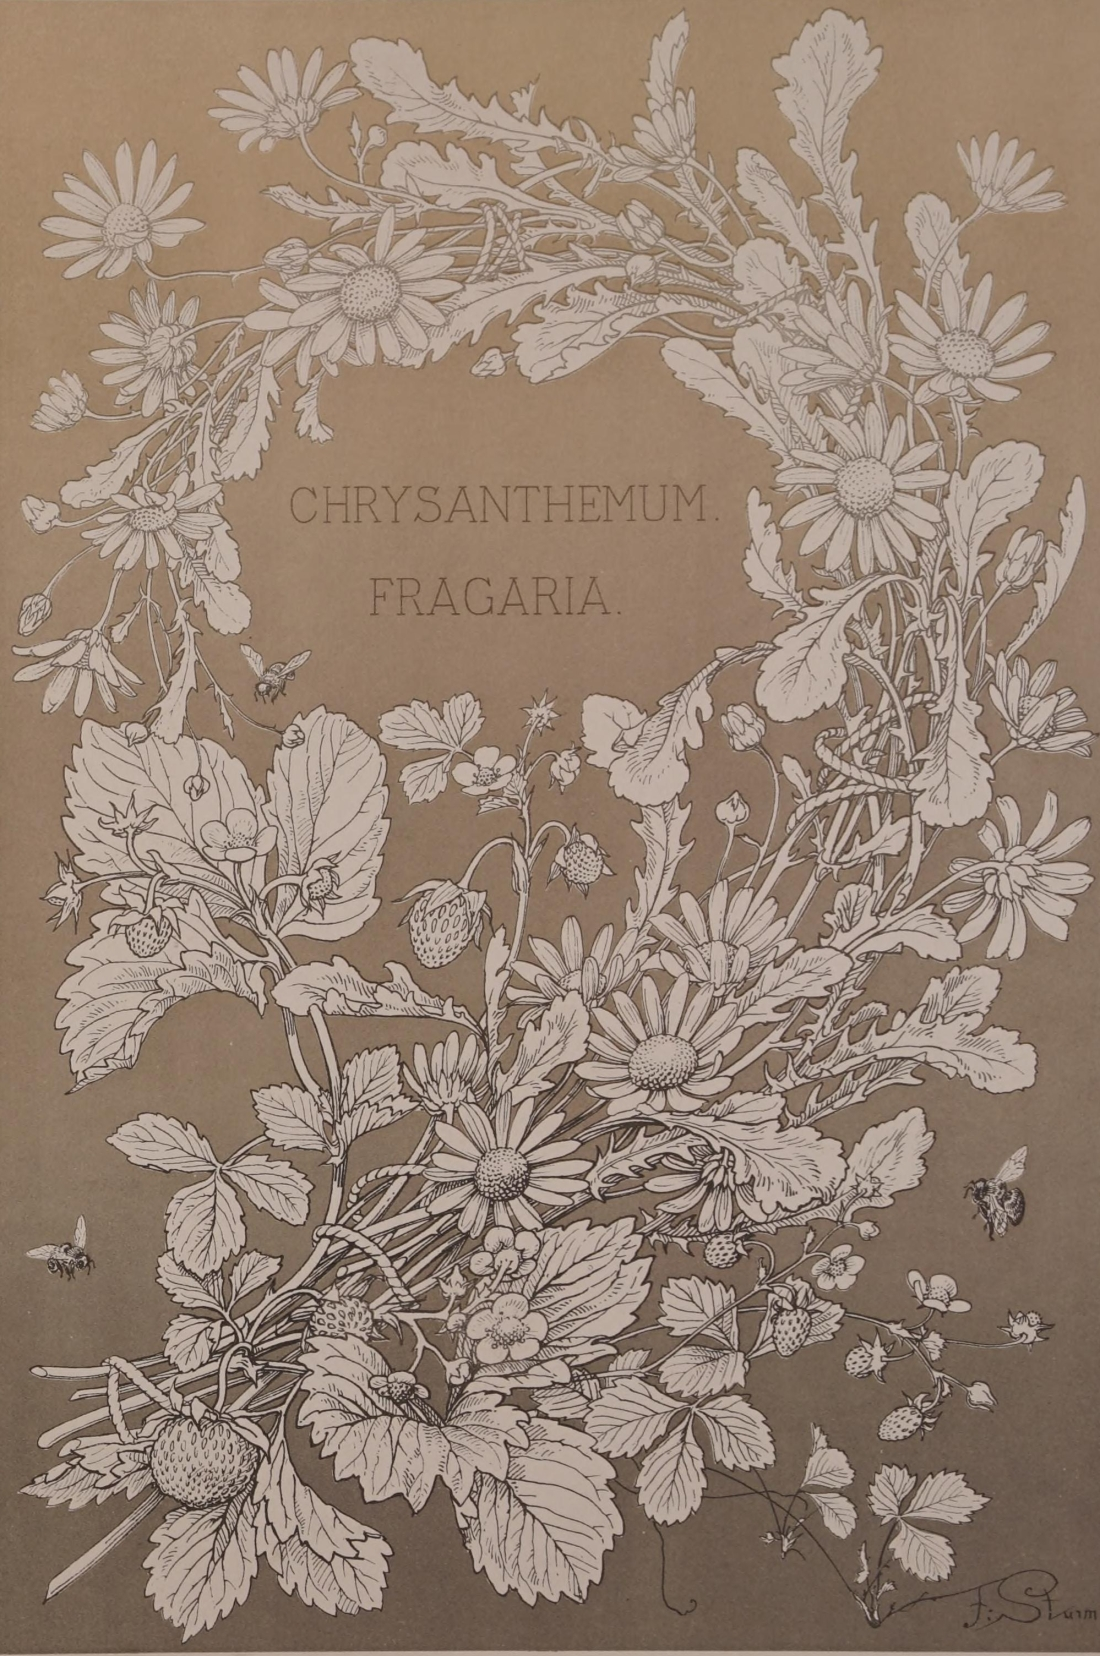 """Chrysanthemum Fragaria."" Plate I, page 24."